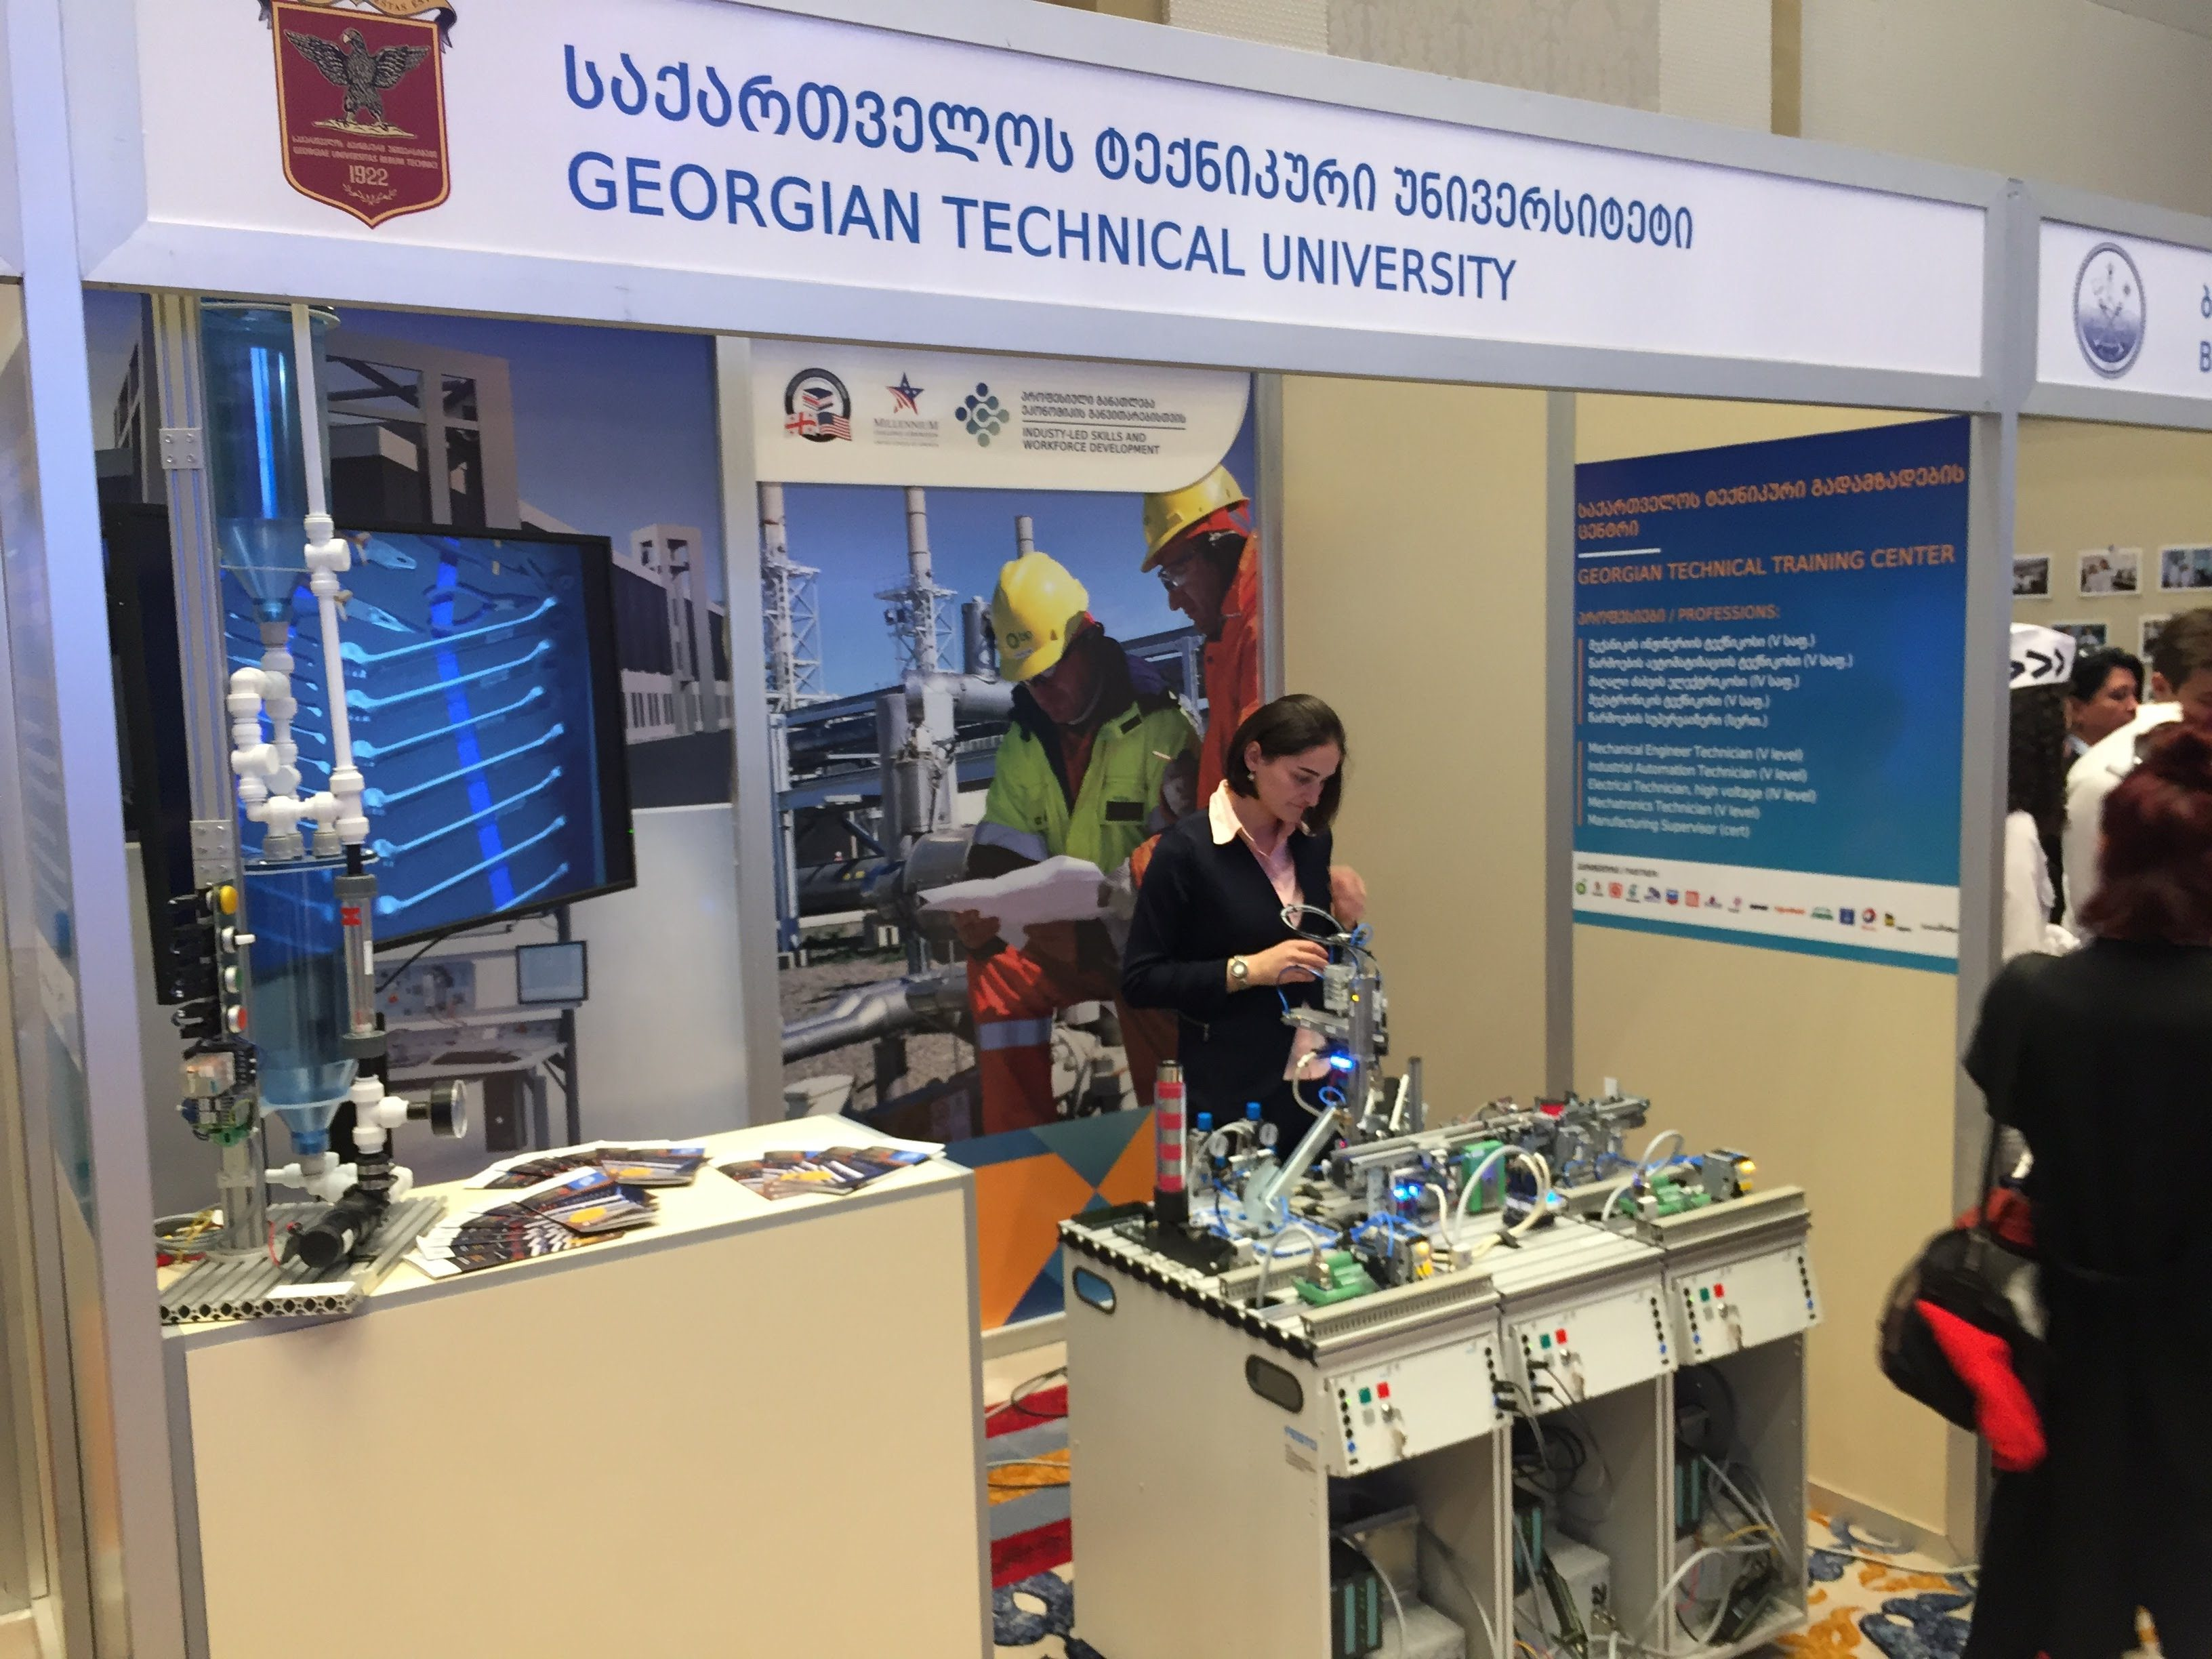 Information booth for Georgian Technical University at the 2017 TVET conference.